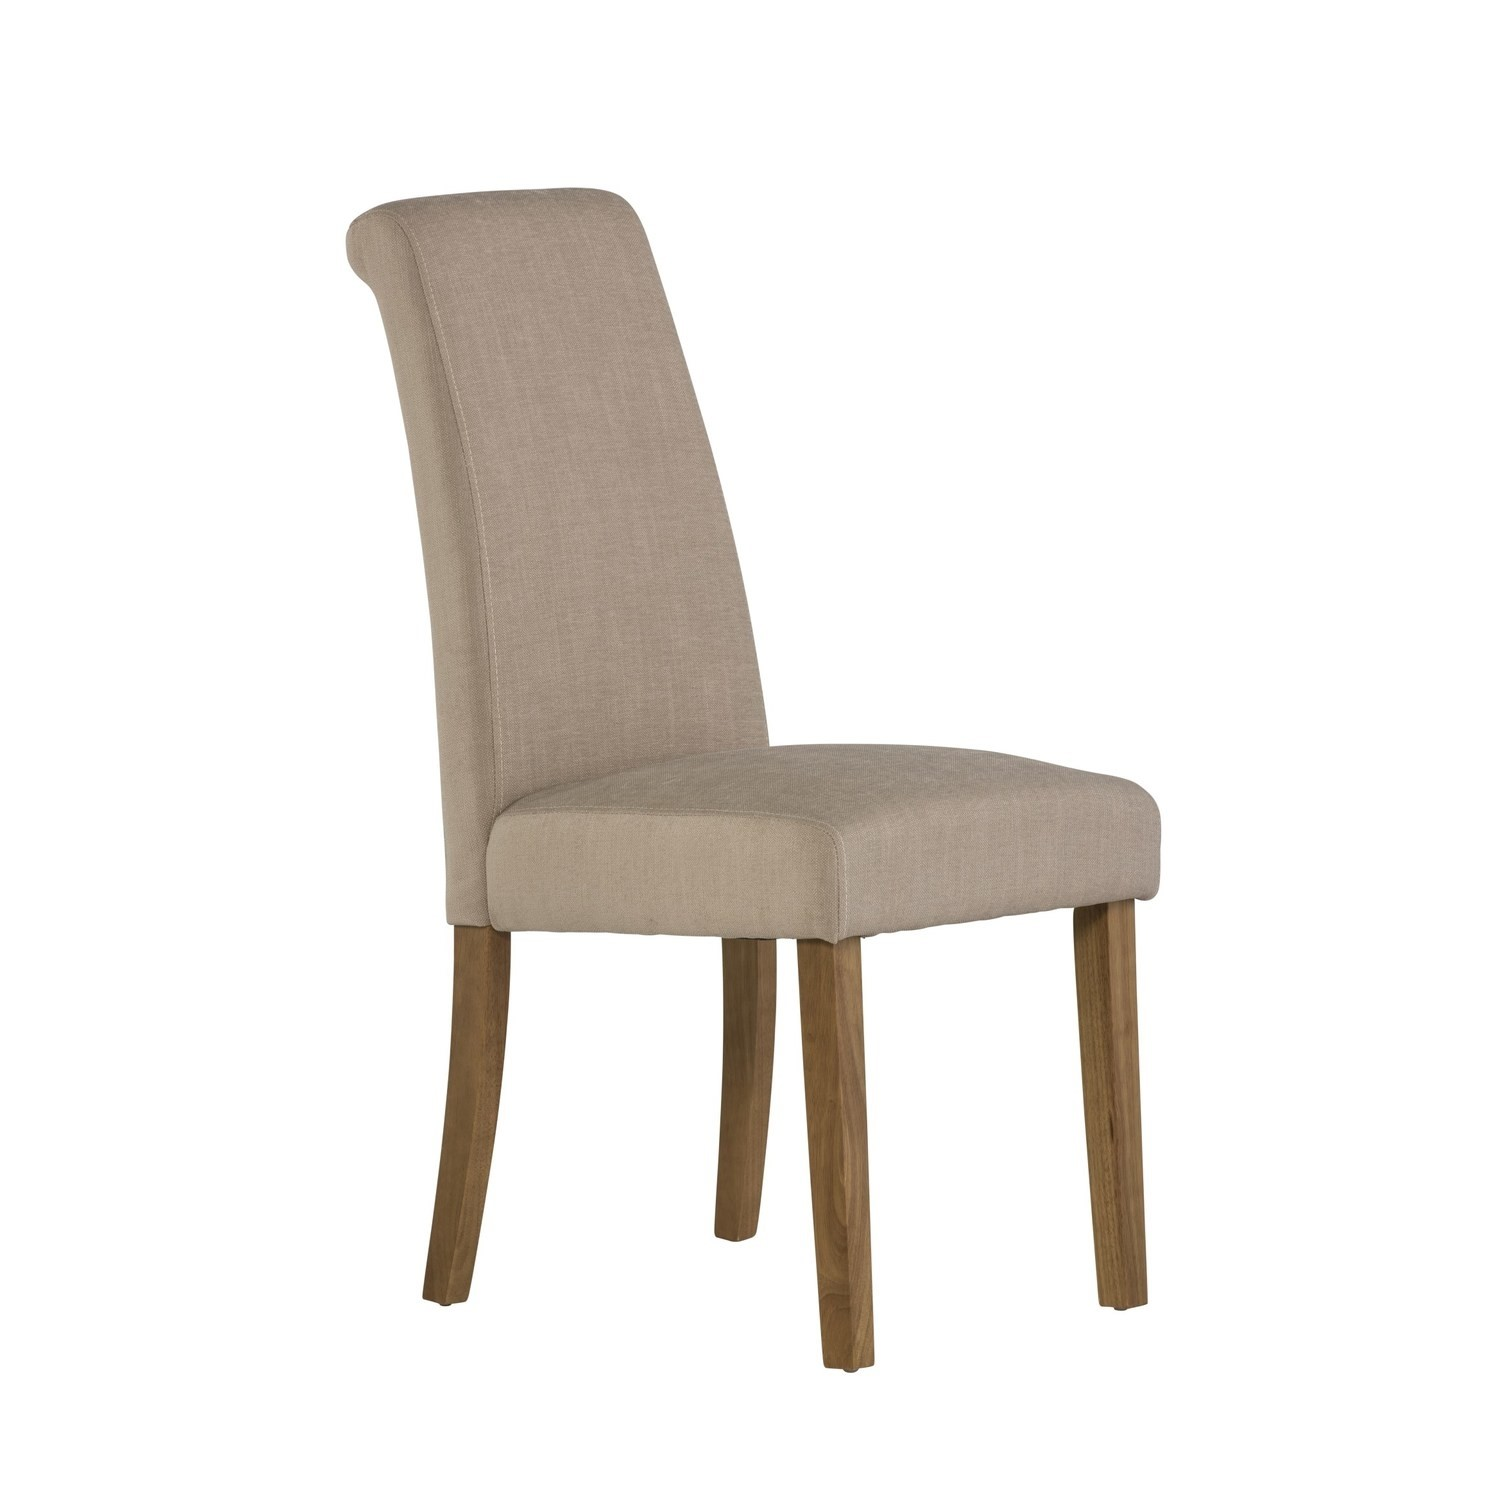 Grade A1 Tuscany Pair Of Dining Chairs In Beige Fabric 77444707 5 Fol100190 Ebay